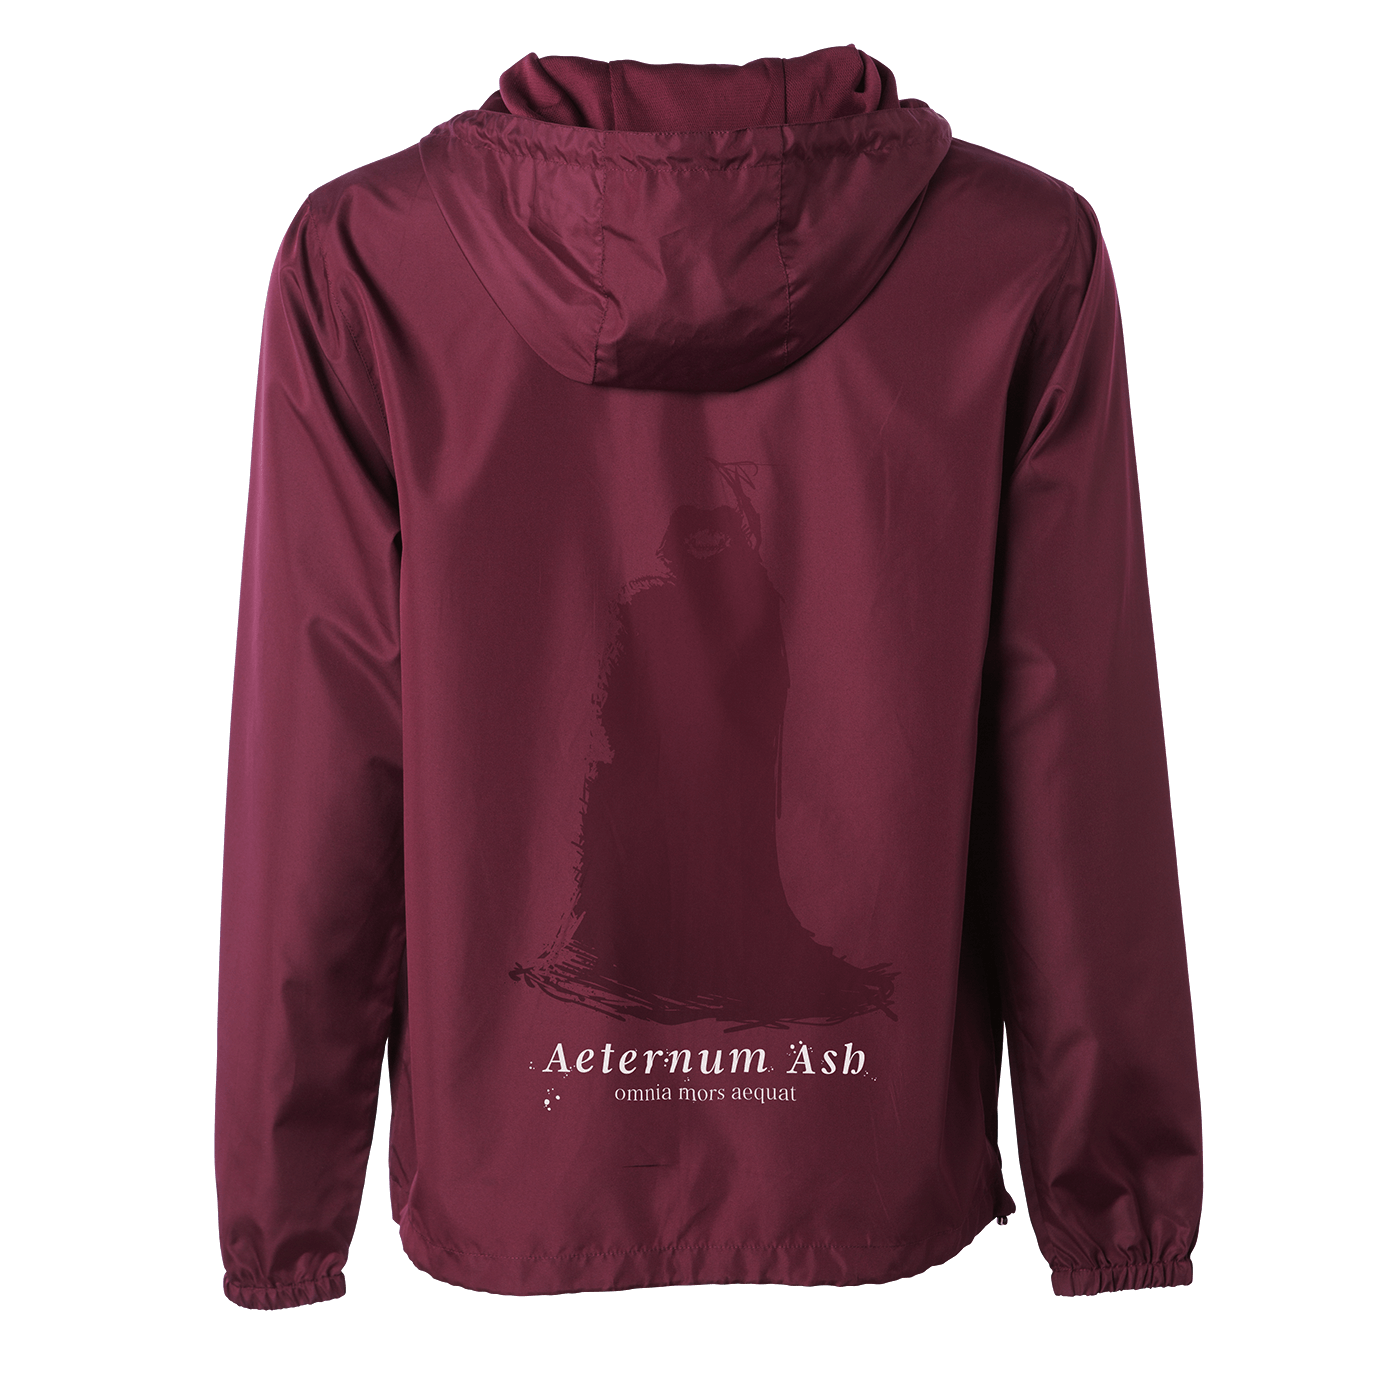 aeternum ash death makes all things equal windbreaker maroon